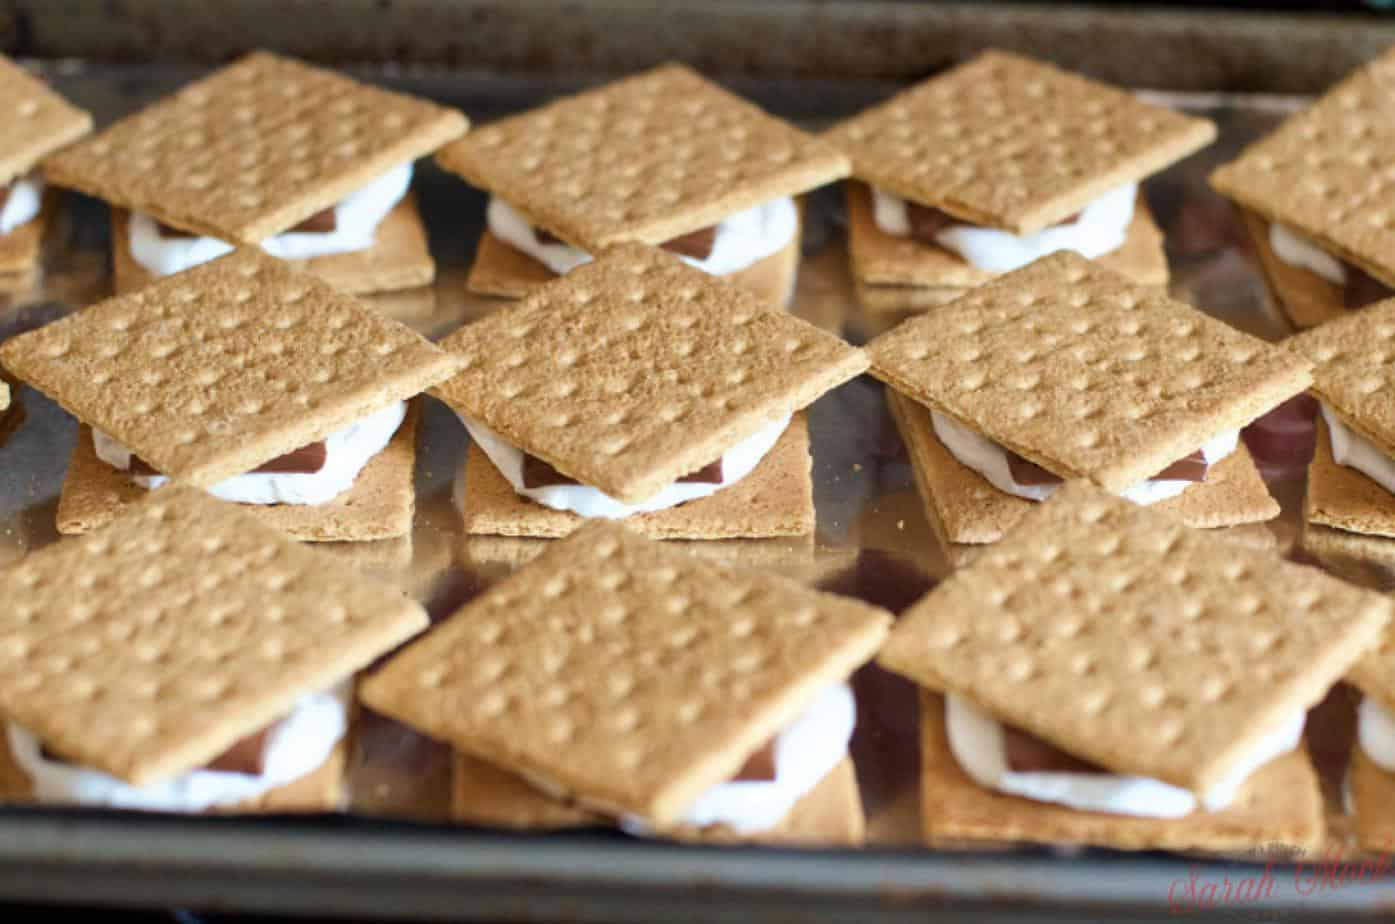 completed smores with graham crackers on top of the melted chocolate and warm marshmallows